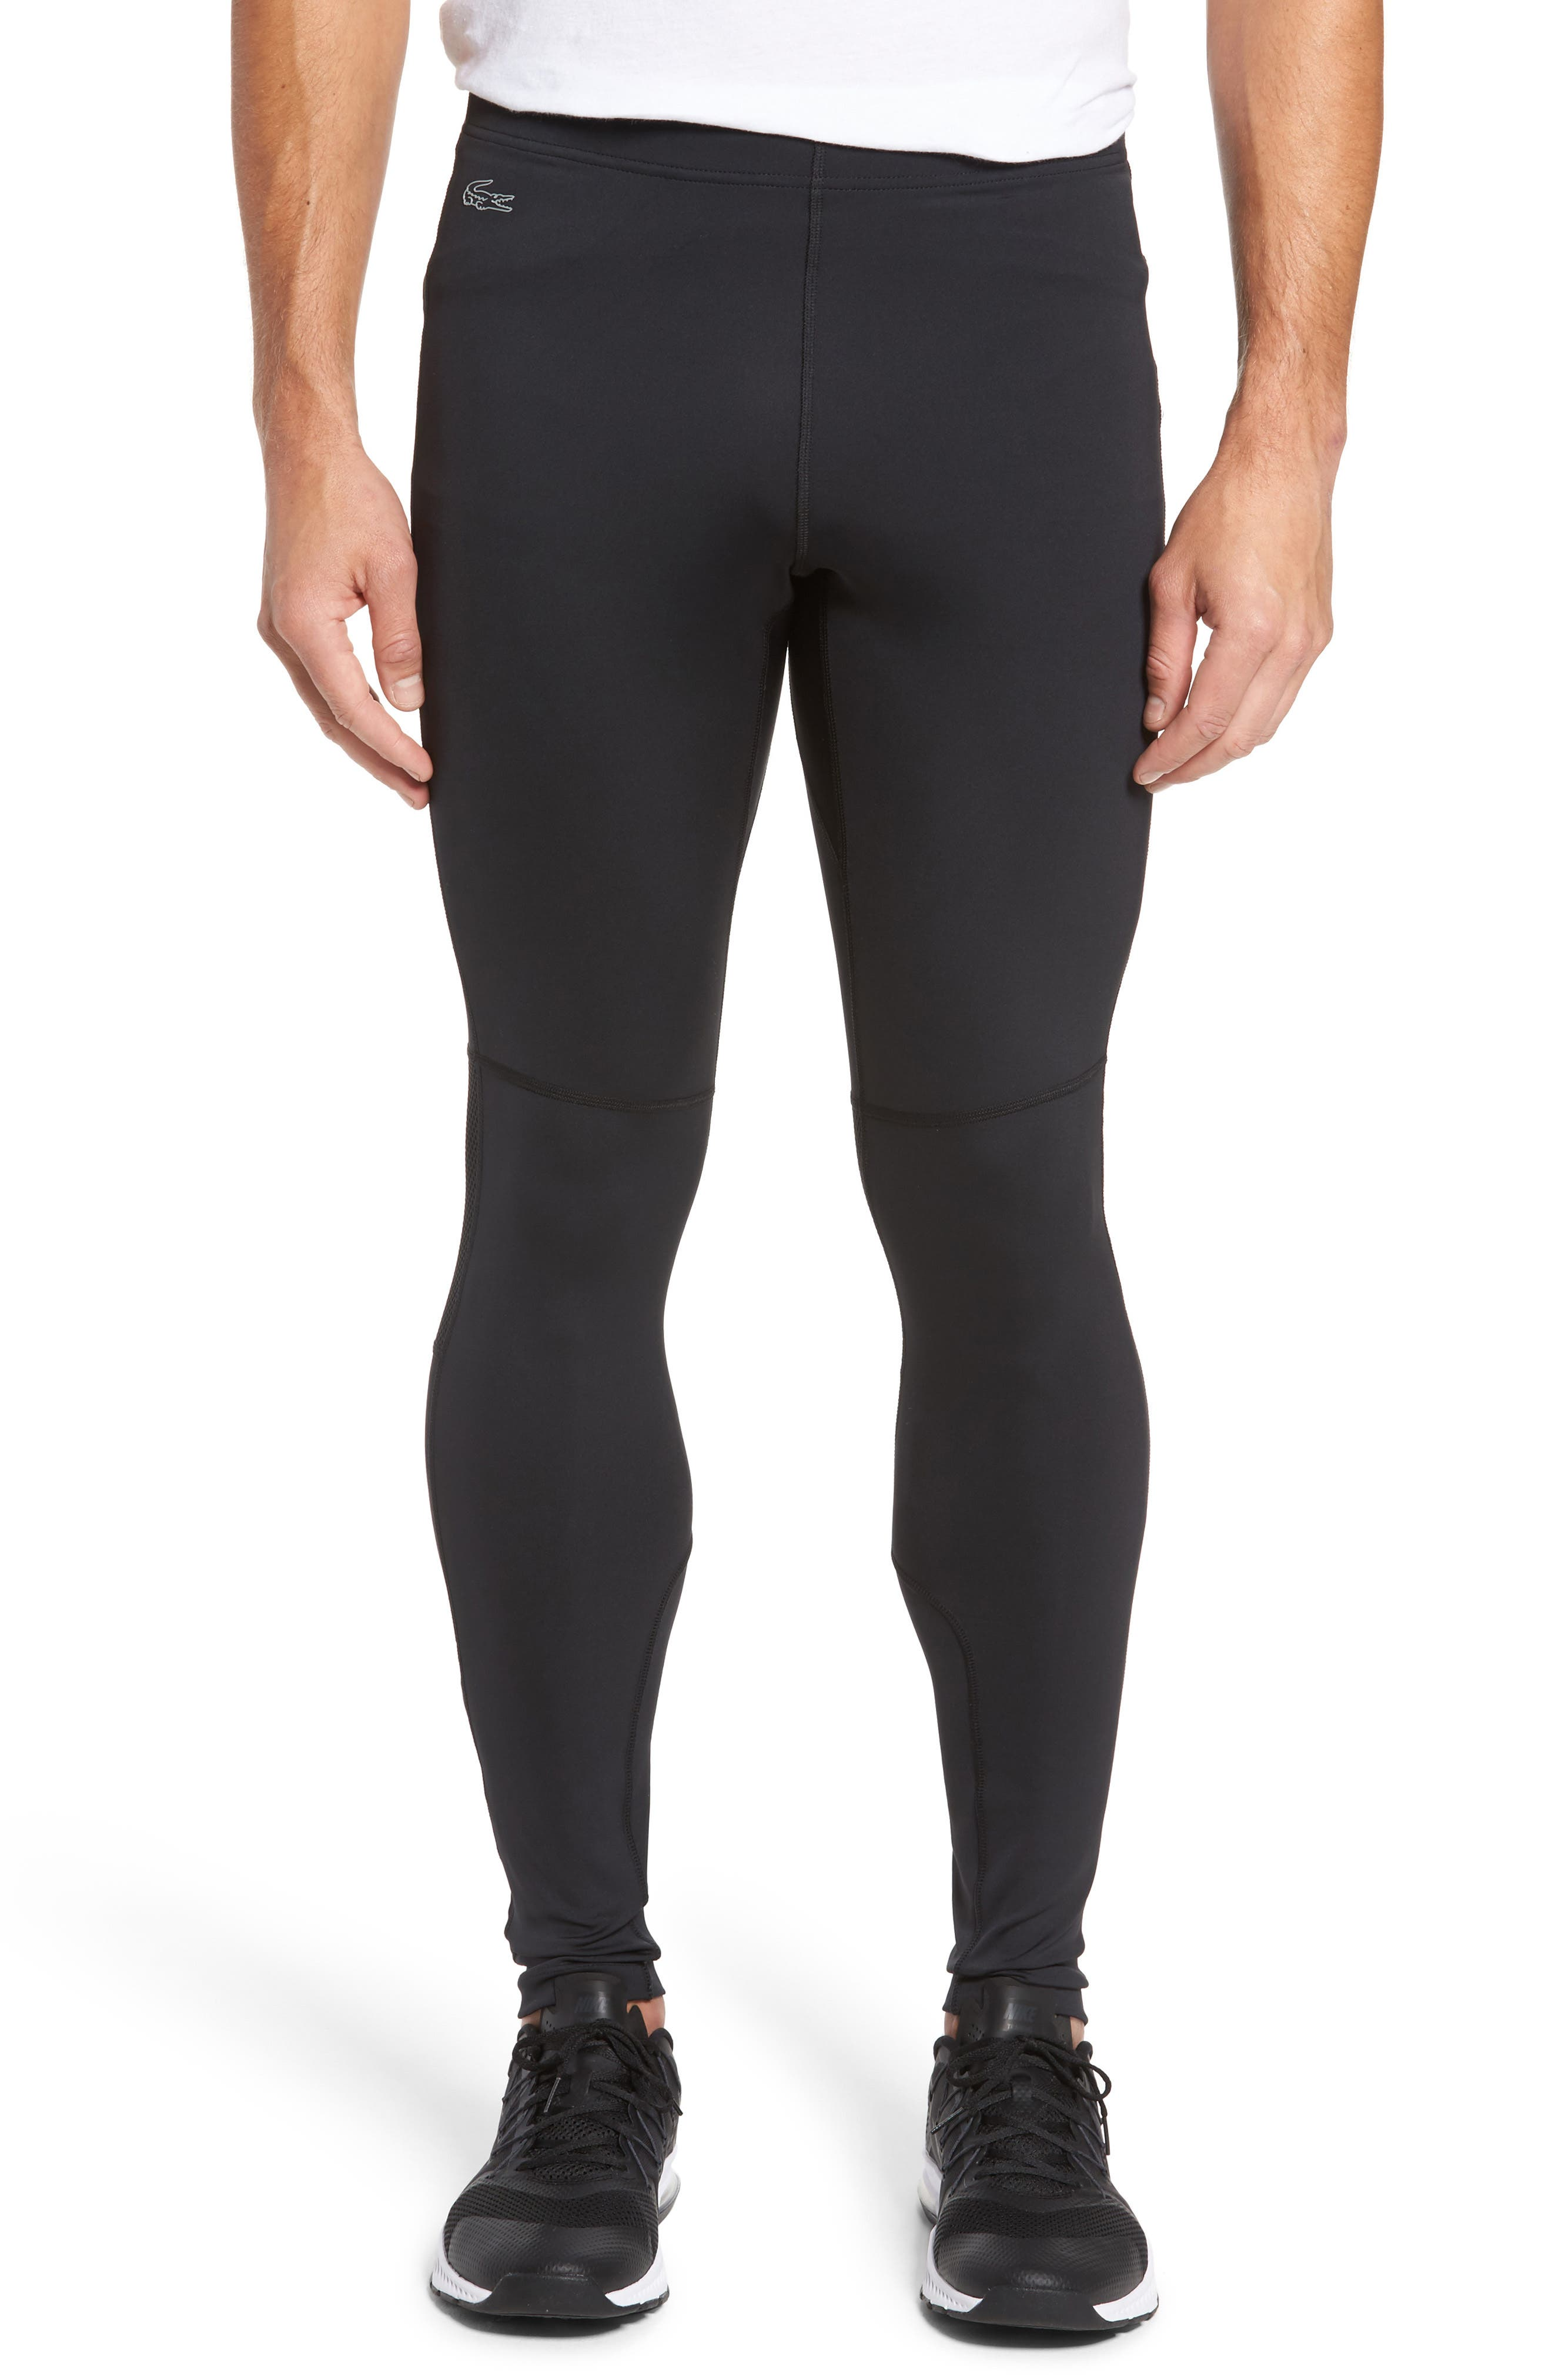 Performance Tights,                         Main,                         color, 031 Black